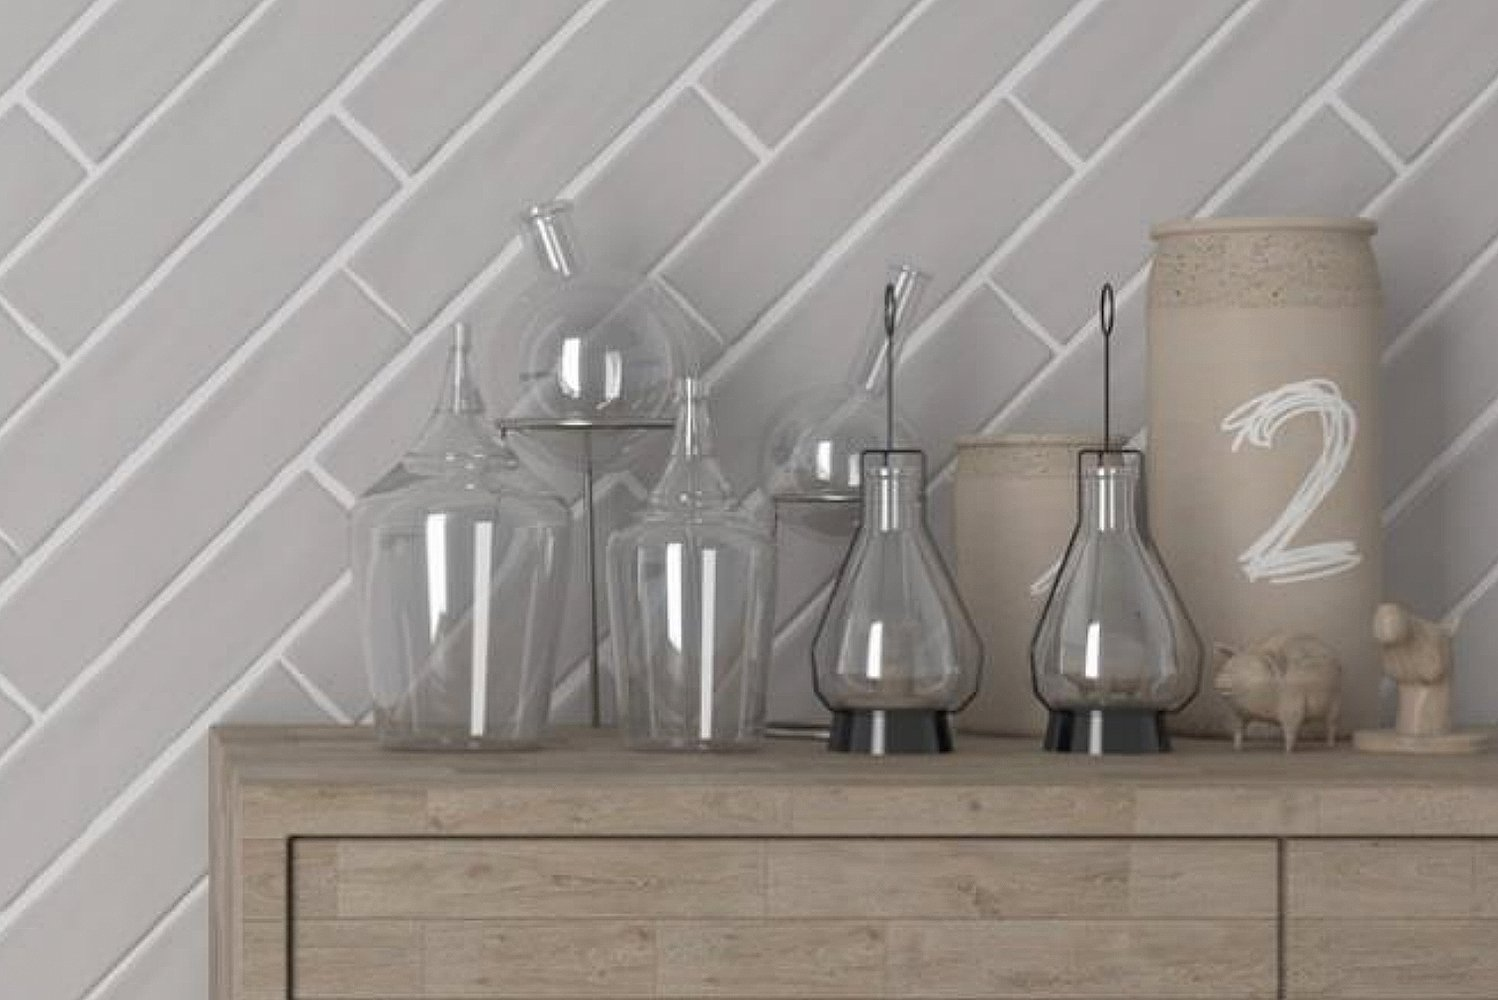 Urban chic: Spanish tile collections by Hastings Tile & Bath | Hotel ...